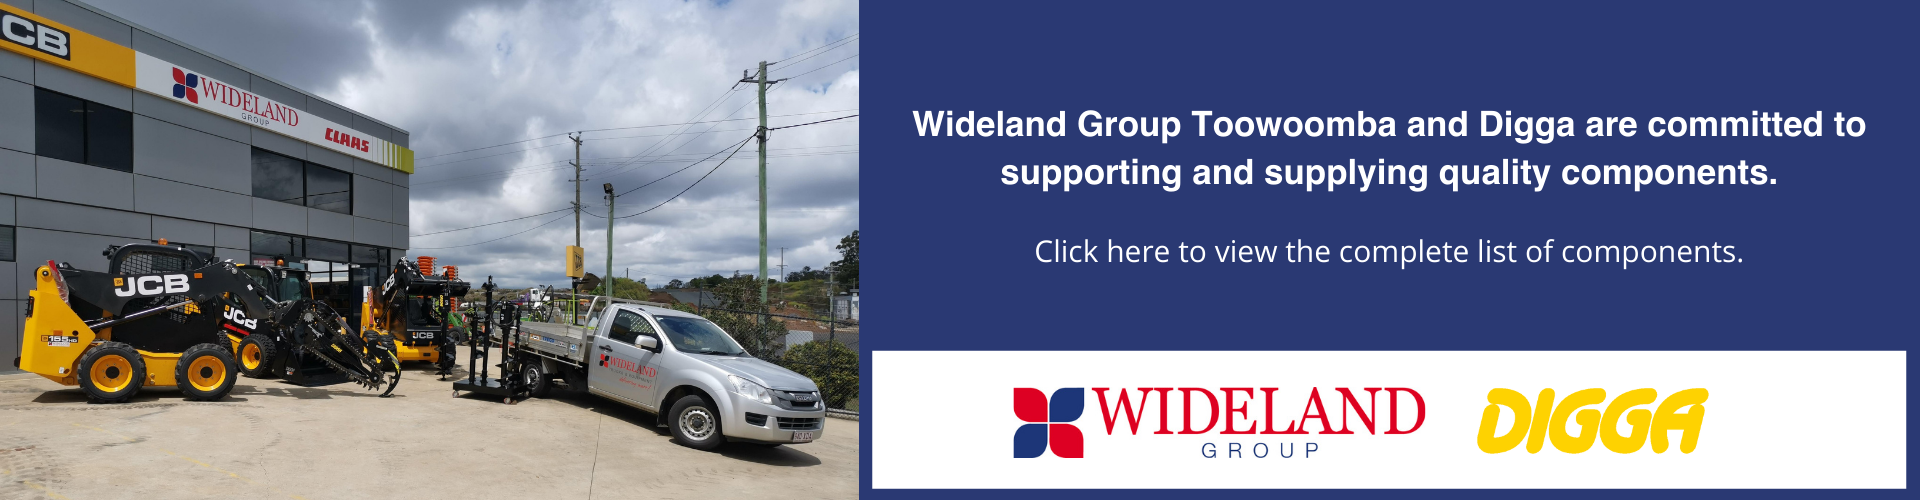 Wideland Group and Digga Supply Quality Components